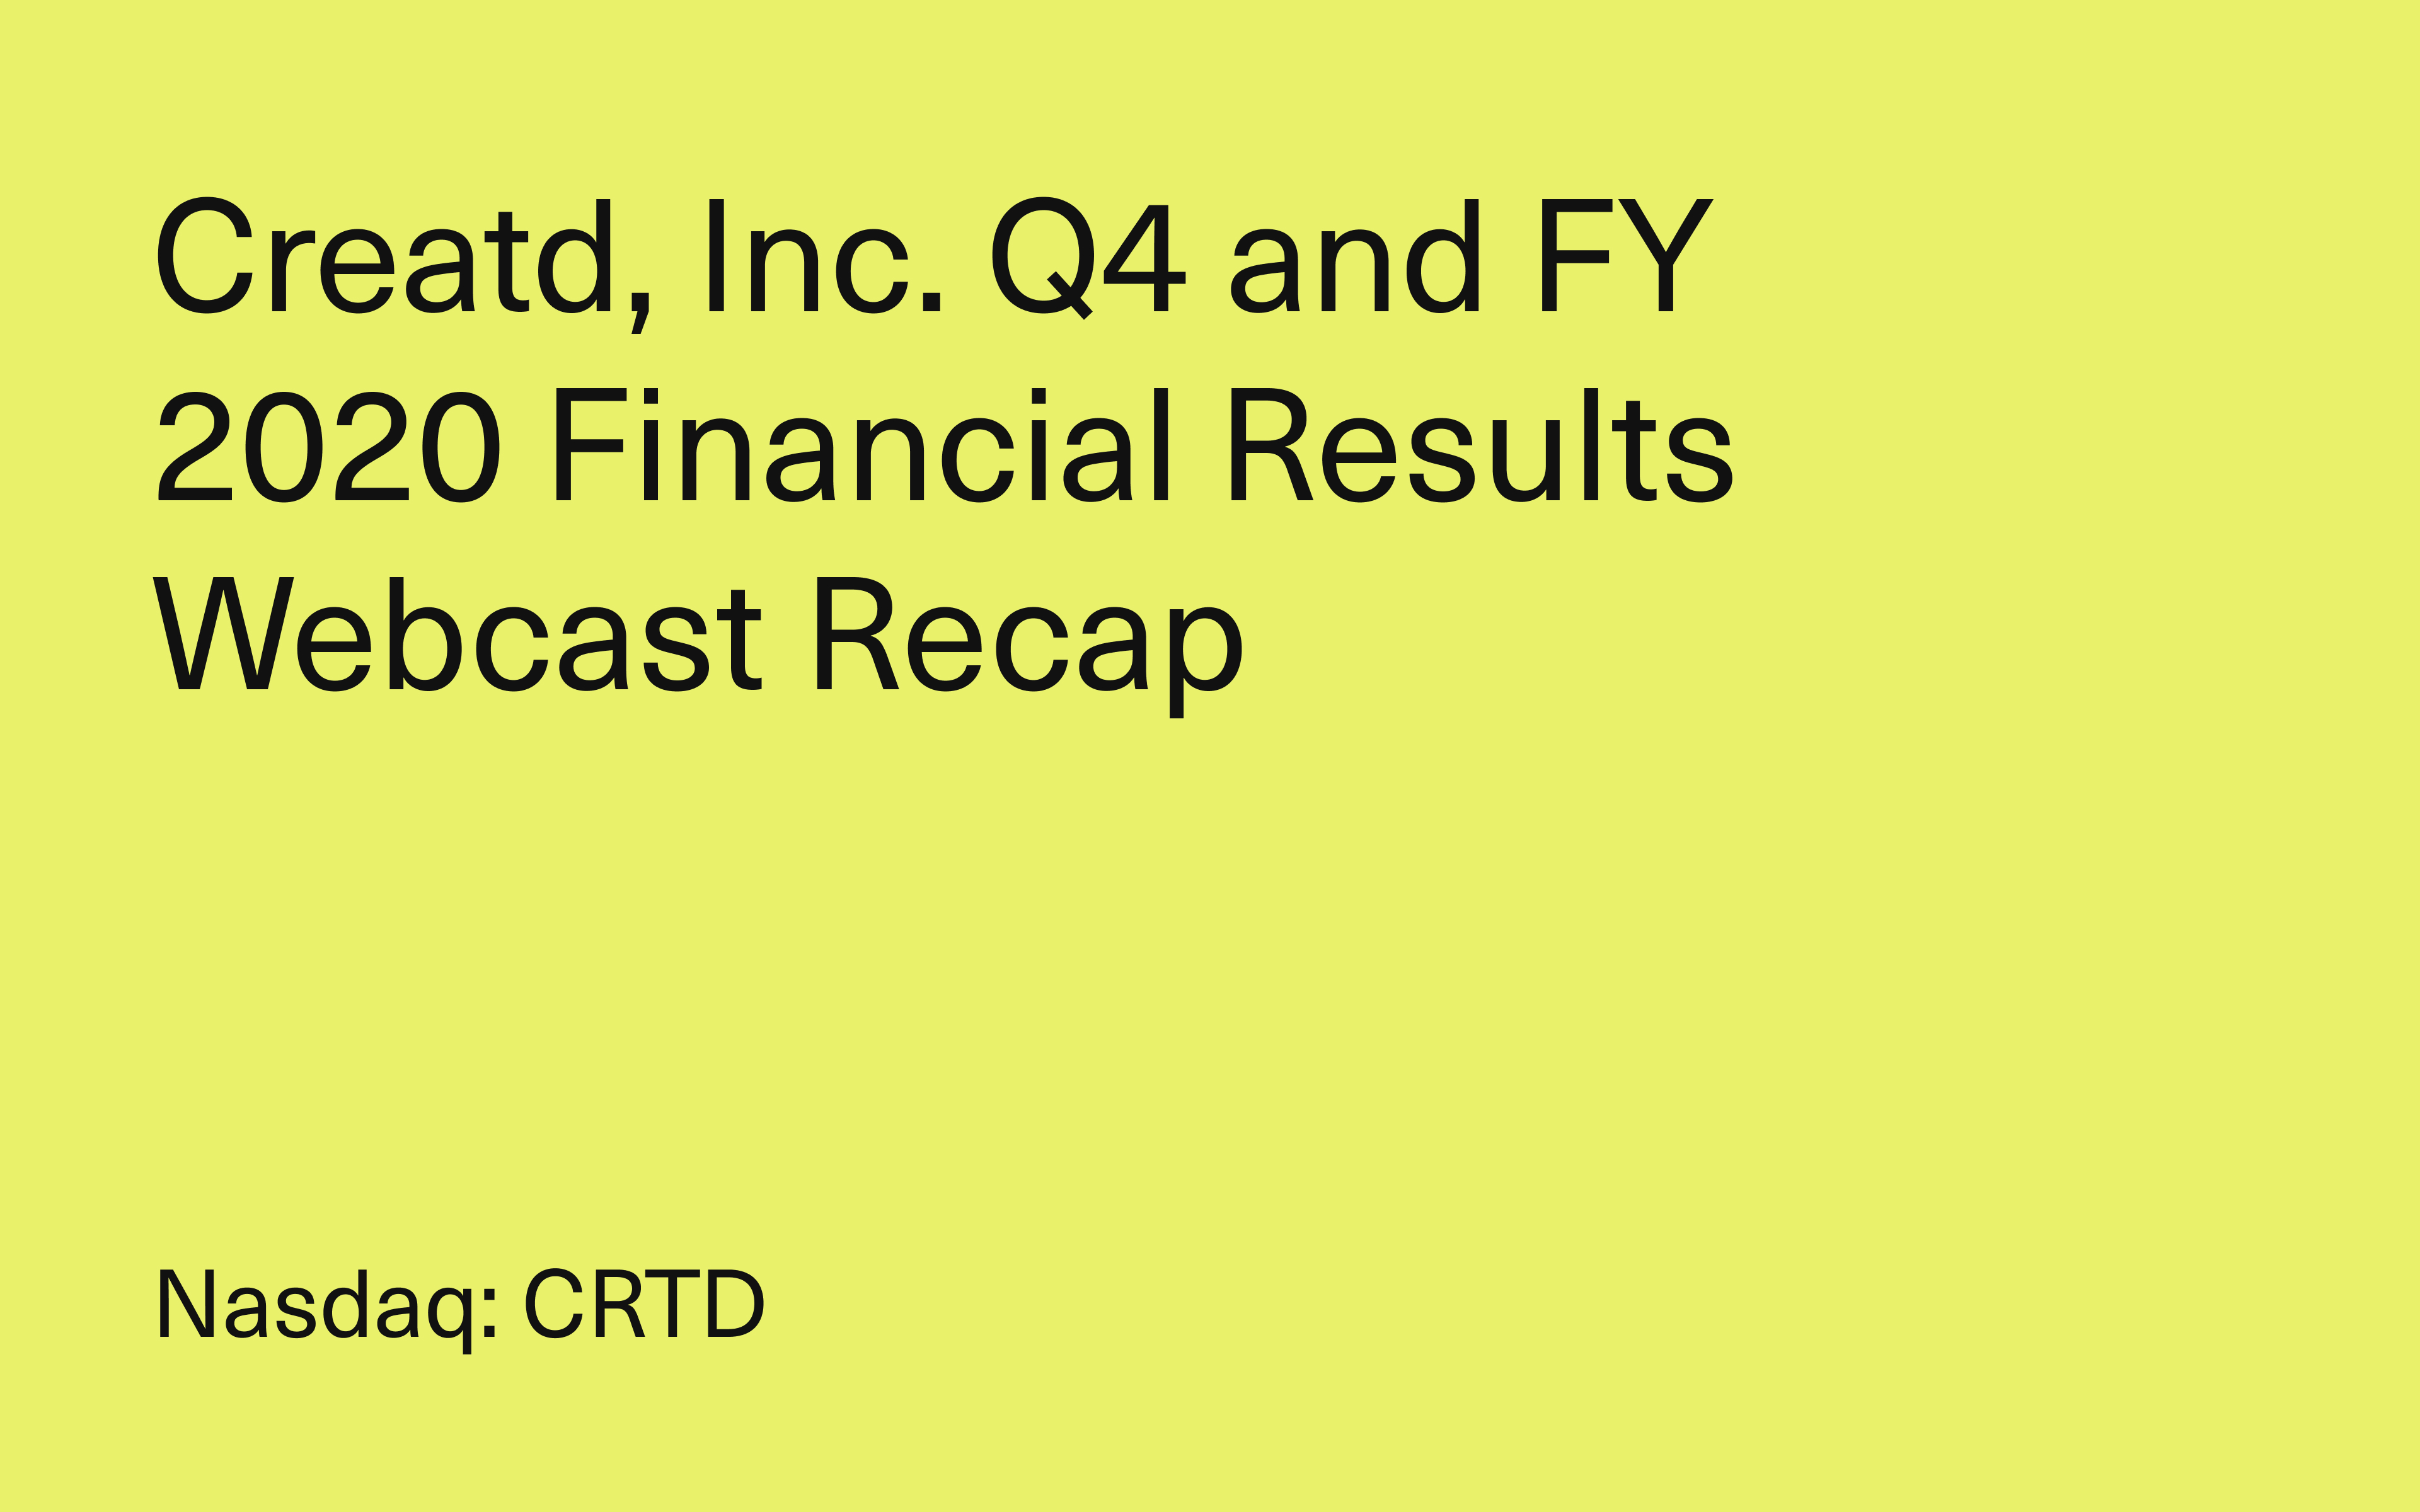 Creatd, Inc. Q4 and Full Year 2020 Financial Results Webcast Recap